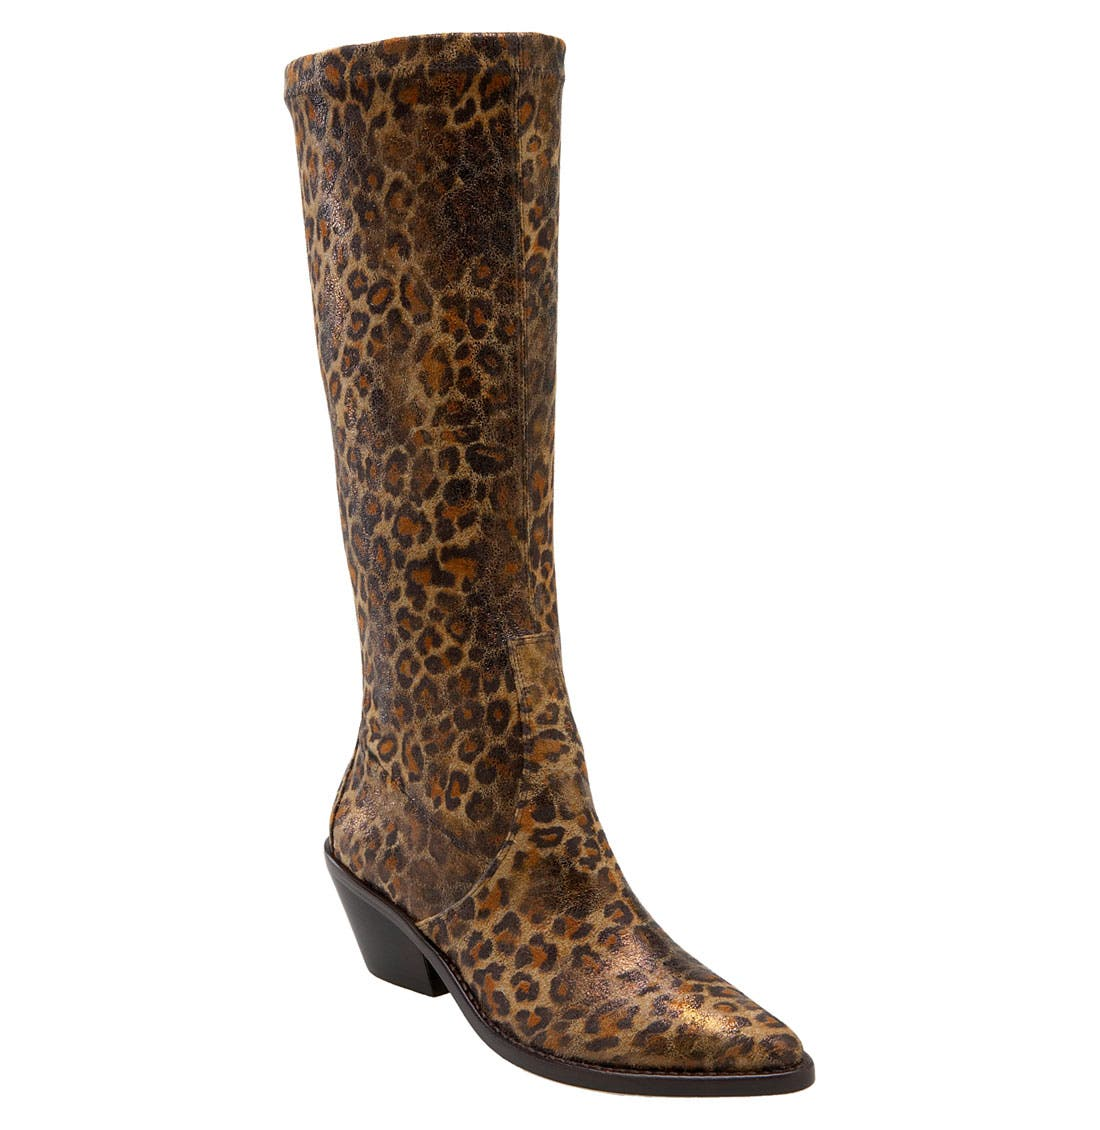 Alternate Image 1 Selected - Donald J Pliner 'Jokla' Western Stretch Boot